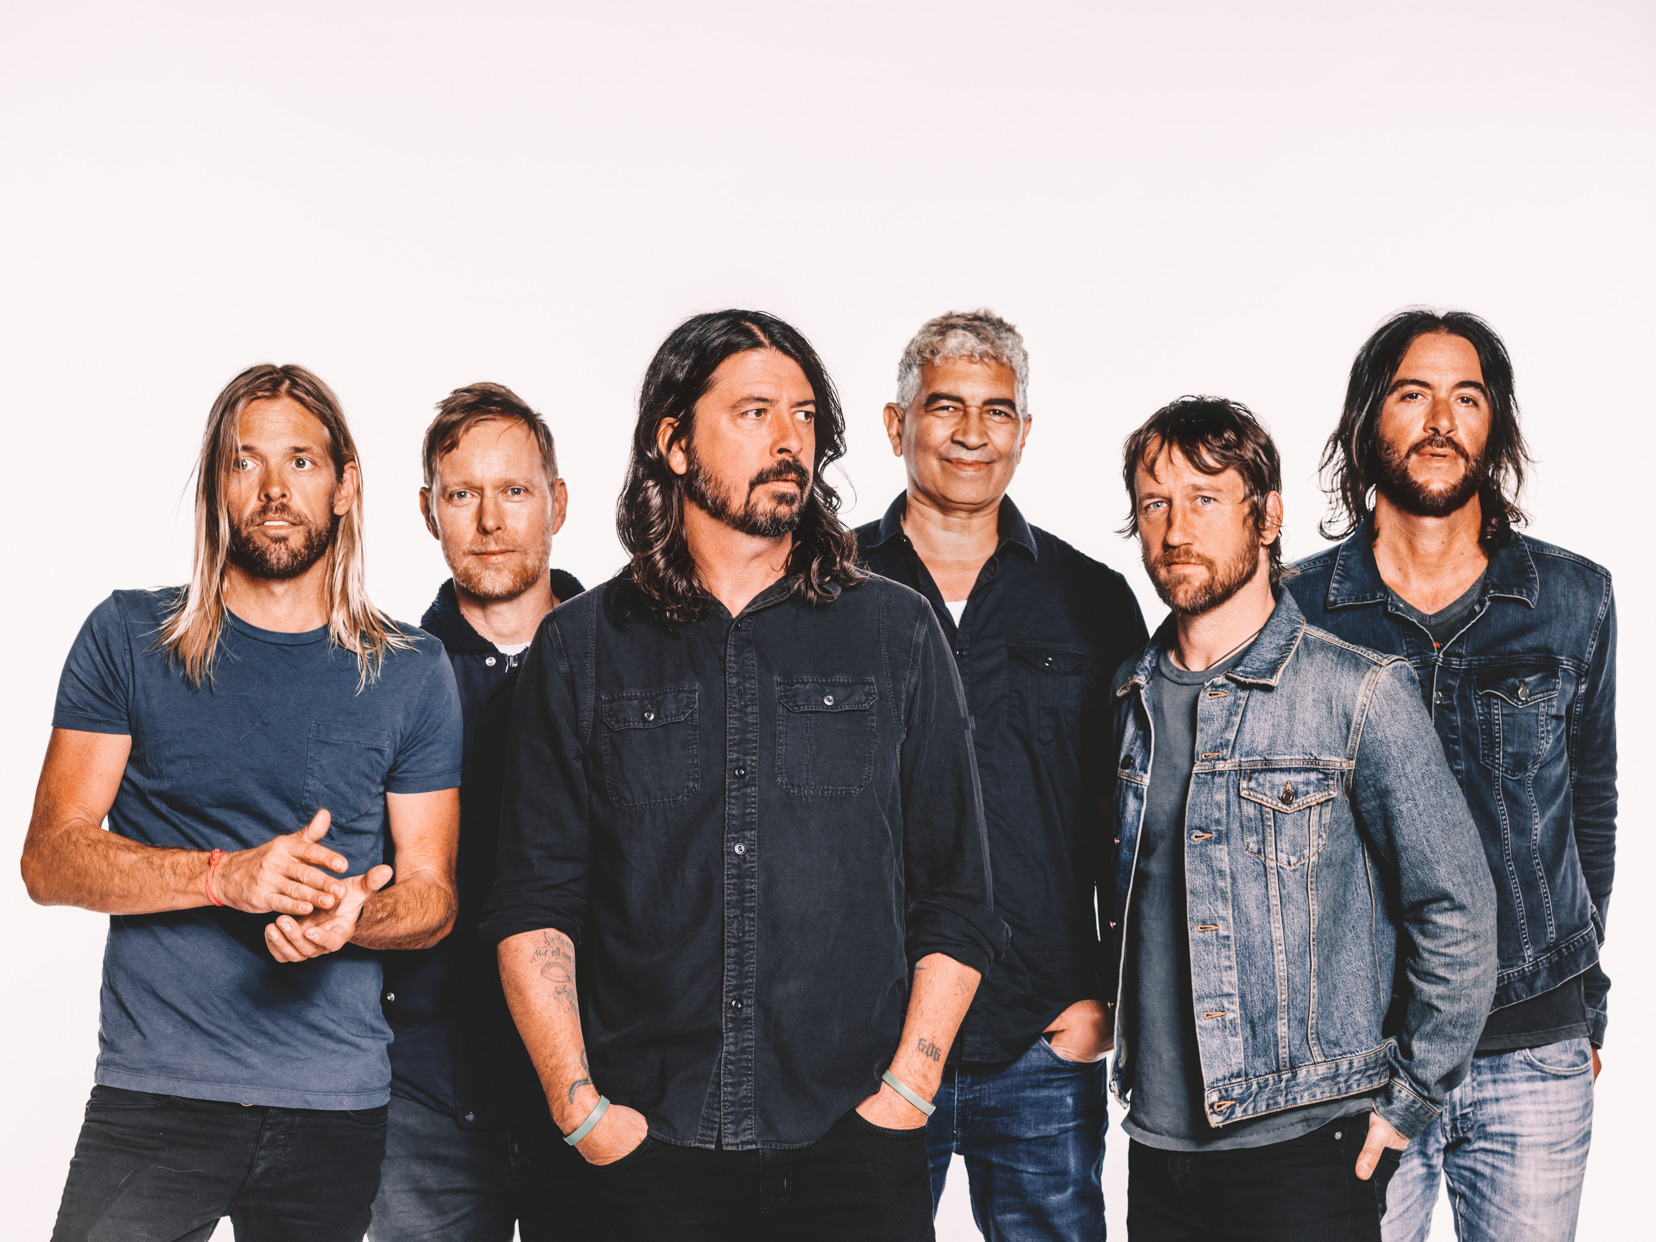 Neues Foo Fighters Album Rezension - Fotocredit: Sony Music